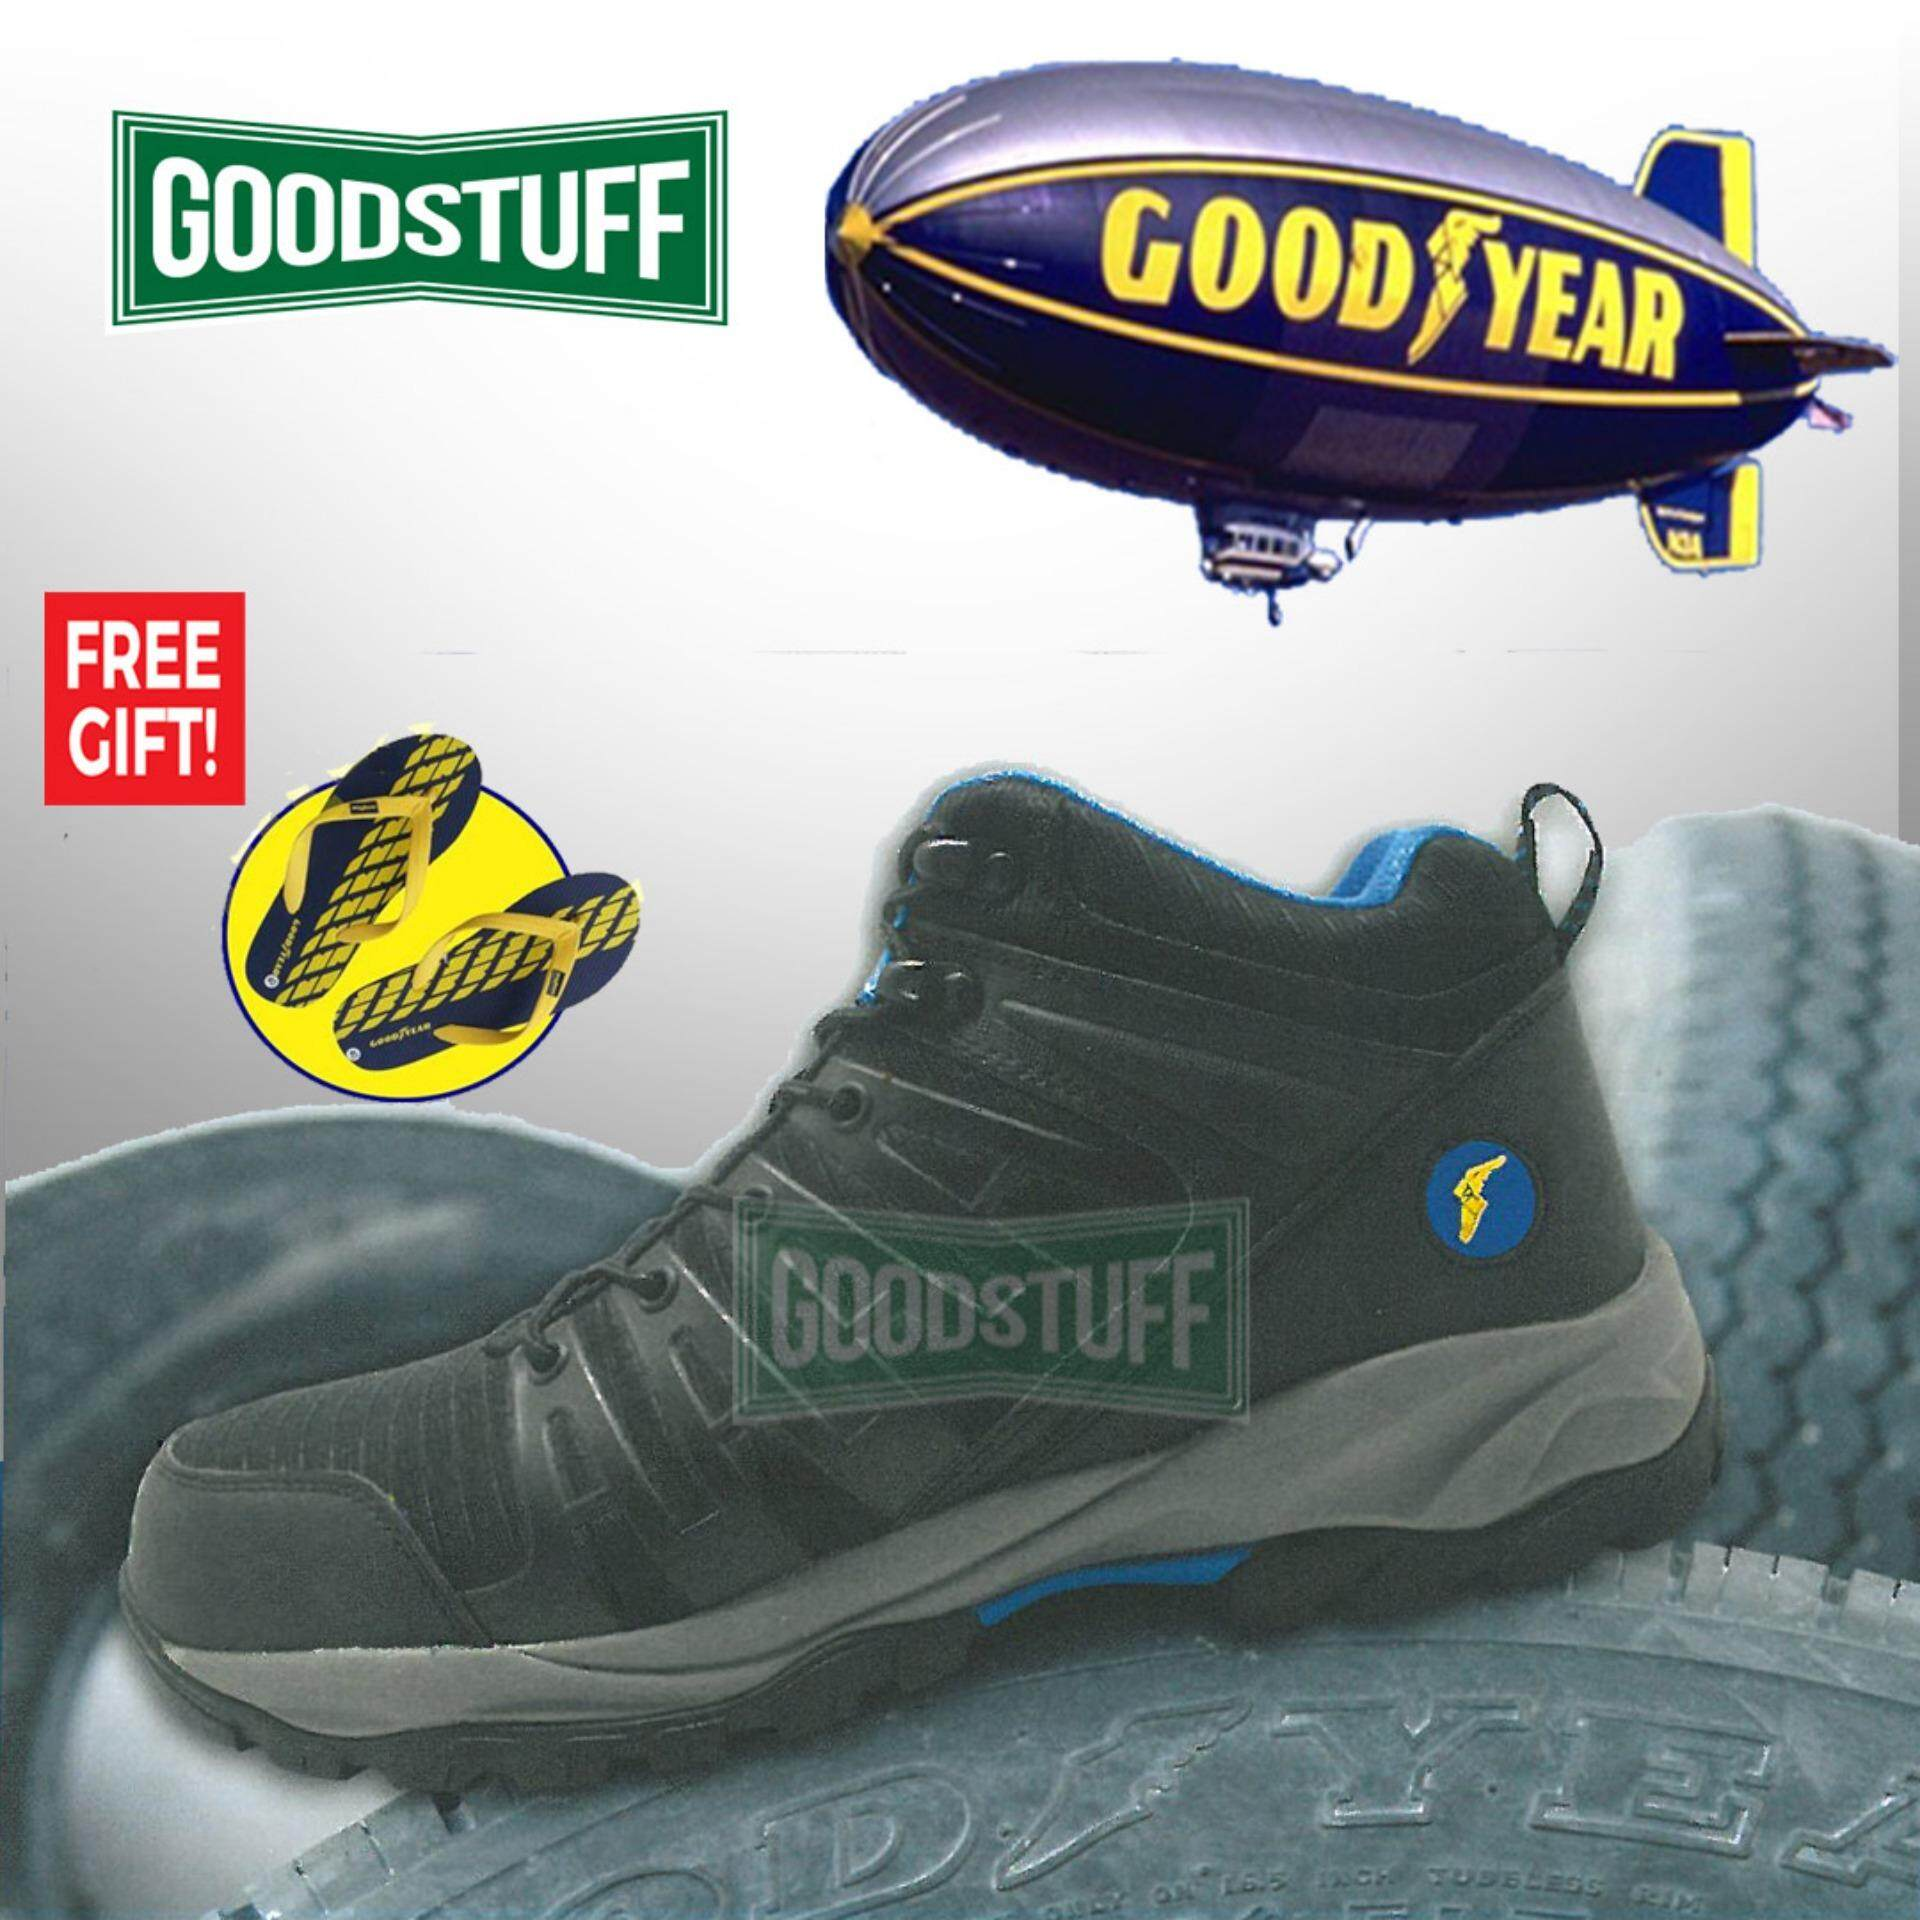 GOODYEAR GY 7501X  EAGLE PRO MX - PERFORMANCE SAFETY SHOES